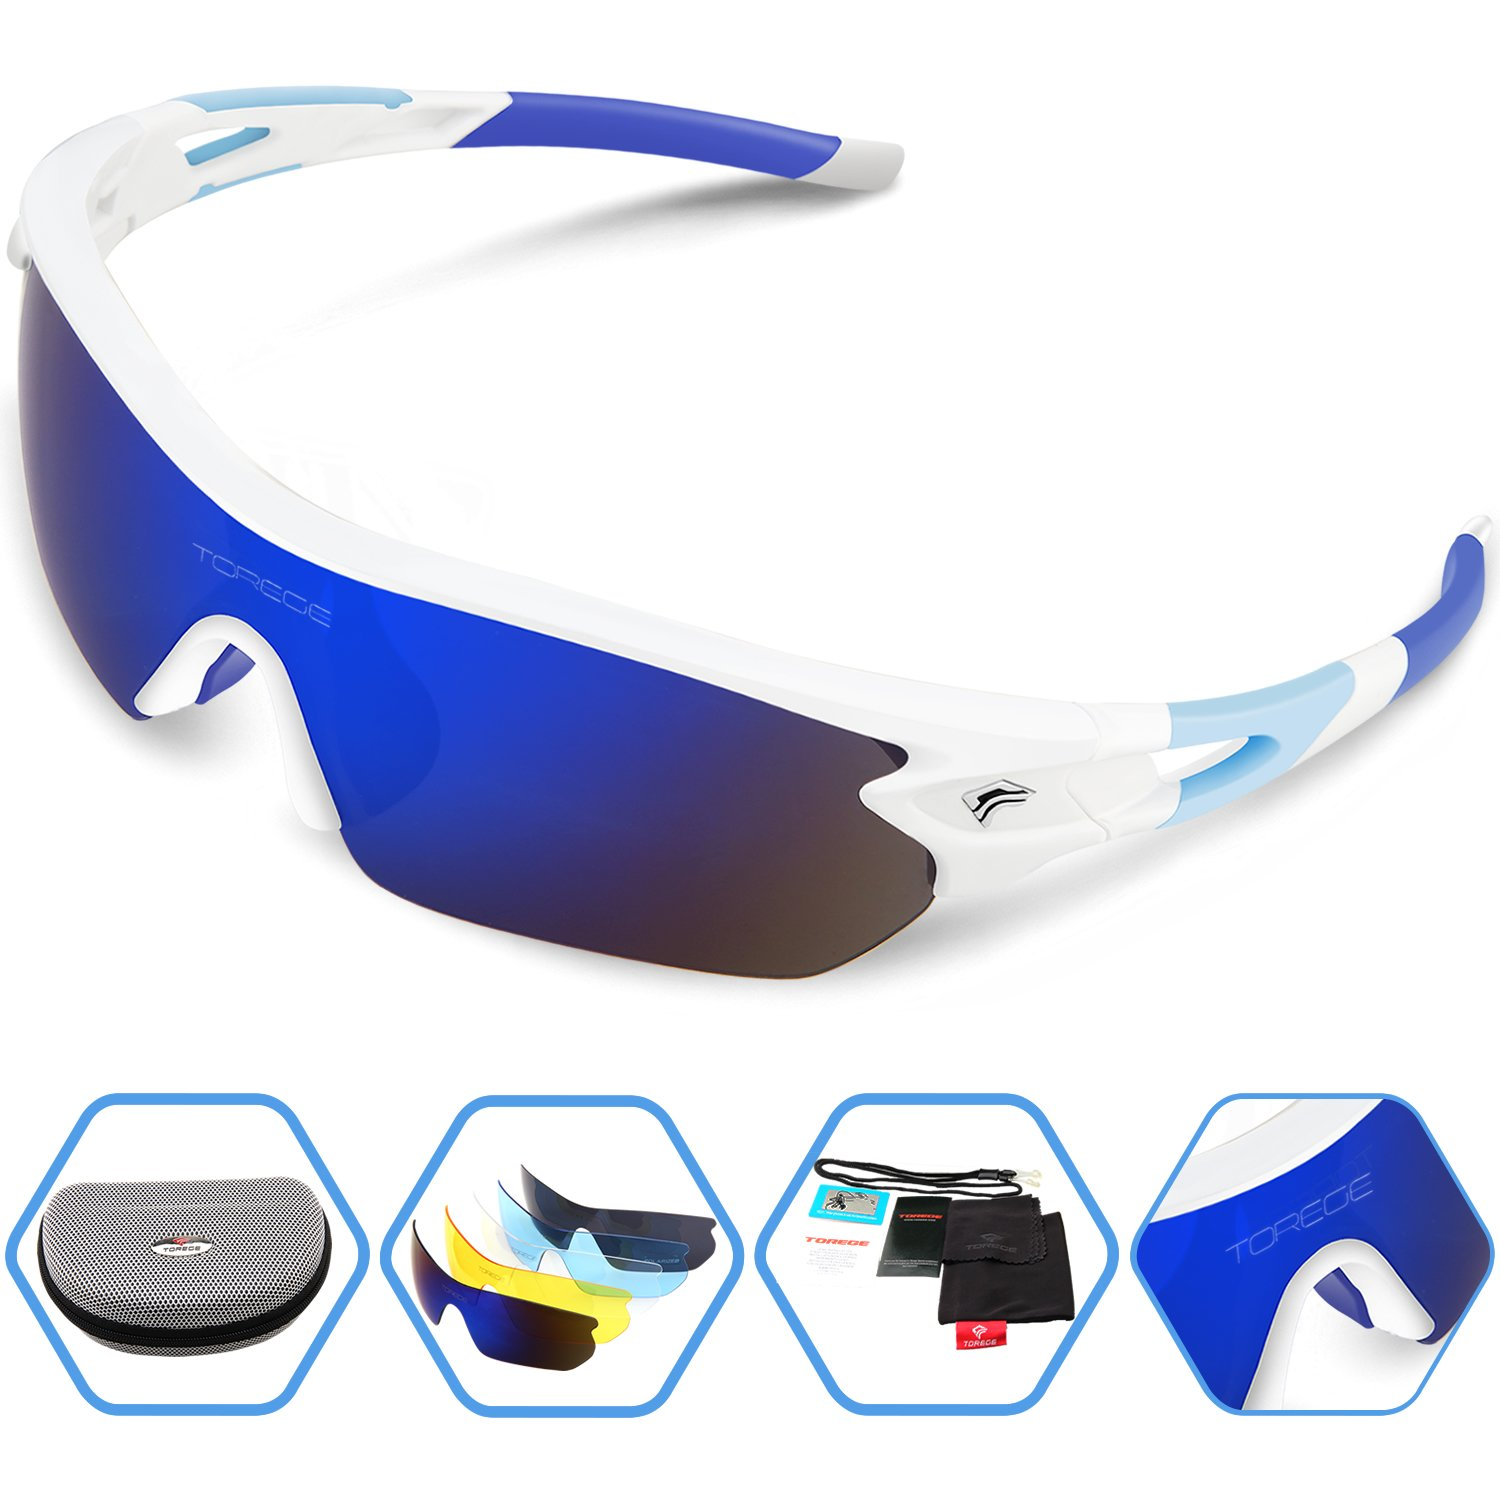 Torege Polarized Sports Sunglasses With 5 Interchangeable Lenes for Men Women Cycling Running Drivin...